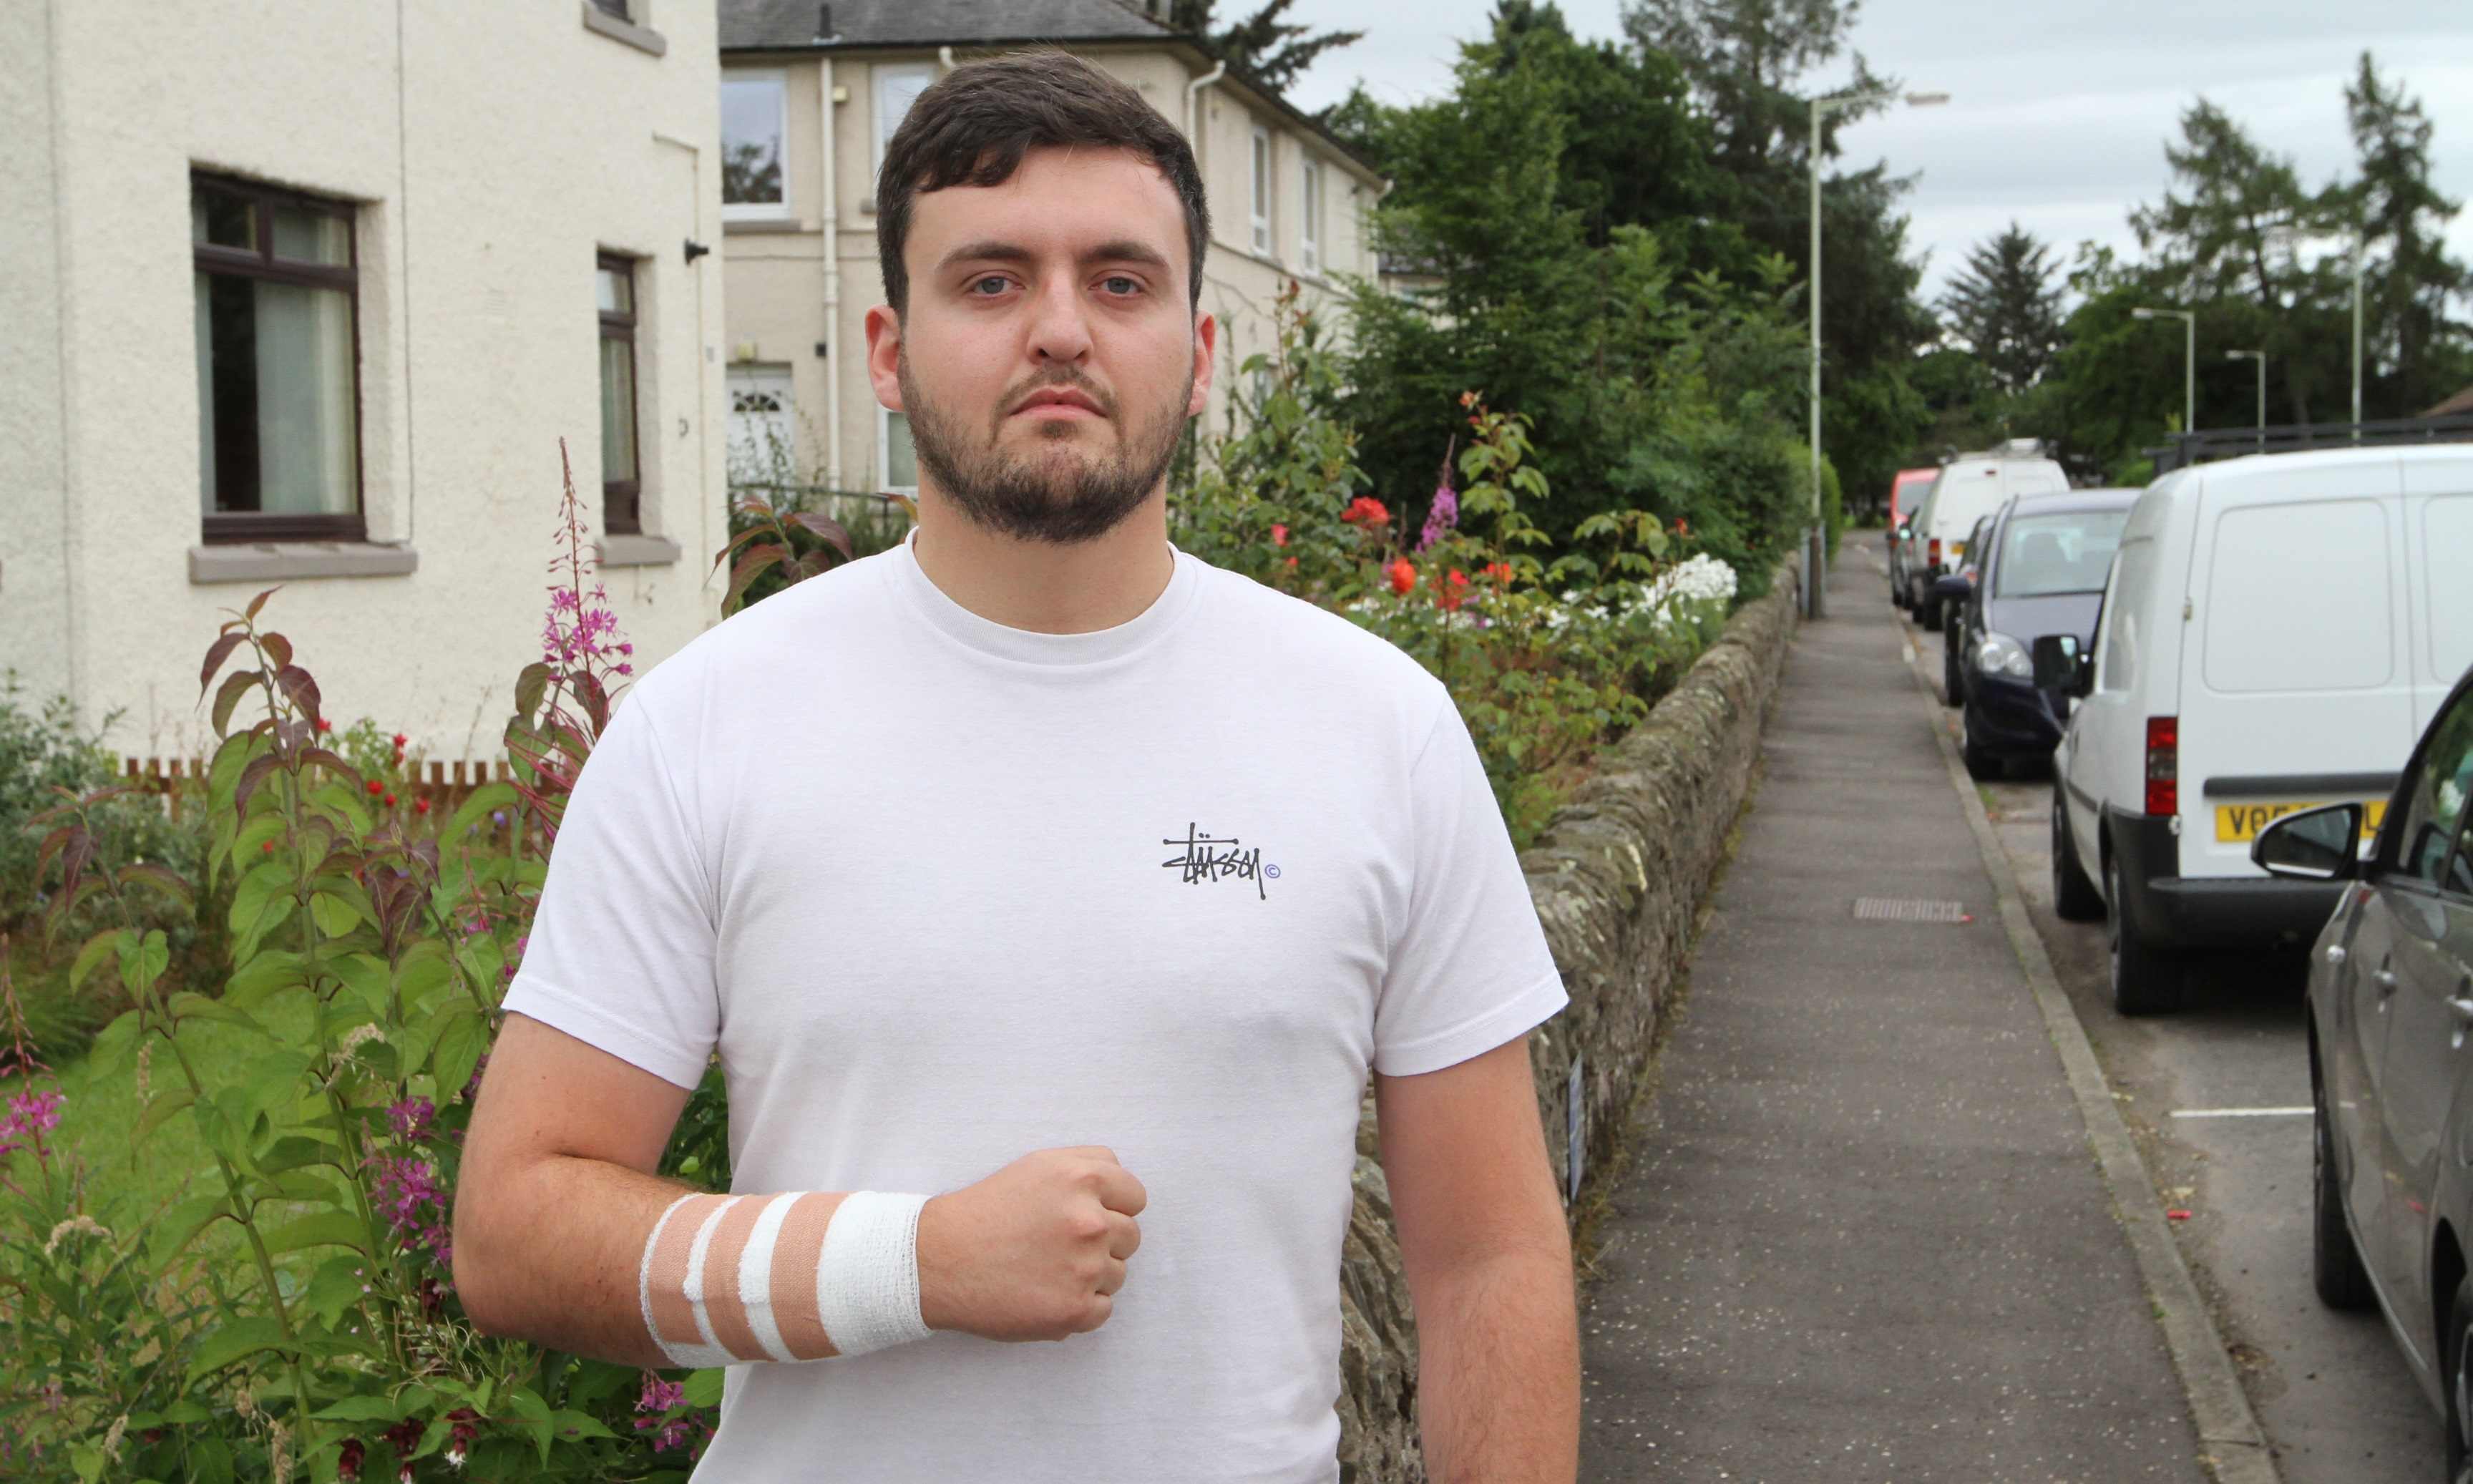 Darren was treated for puncture wounds at Ninewells after the attack